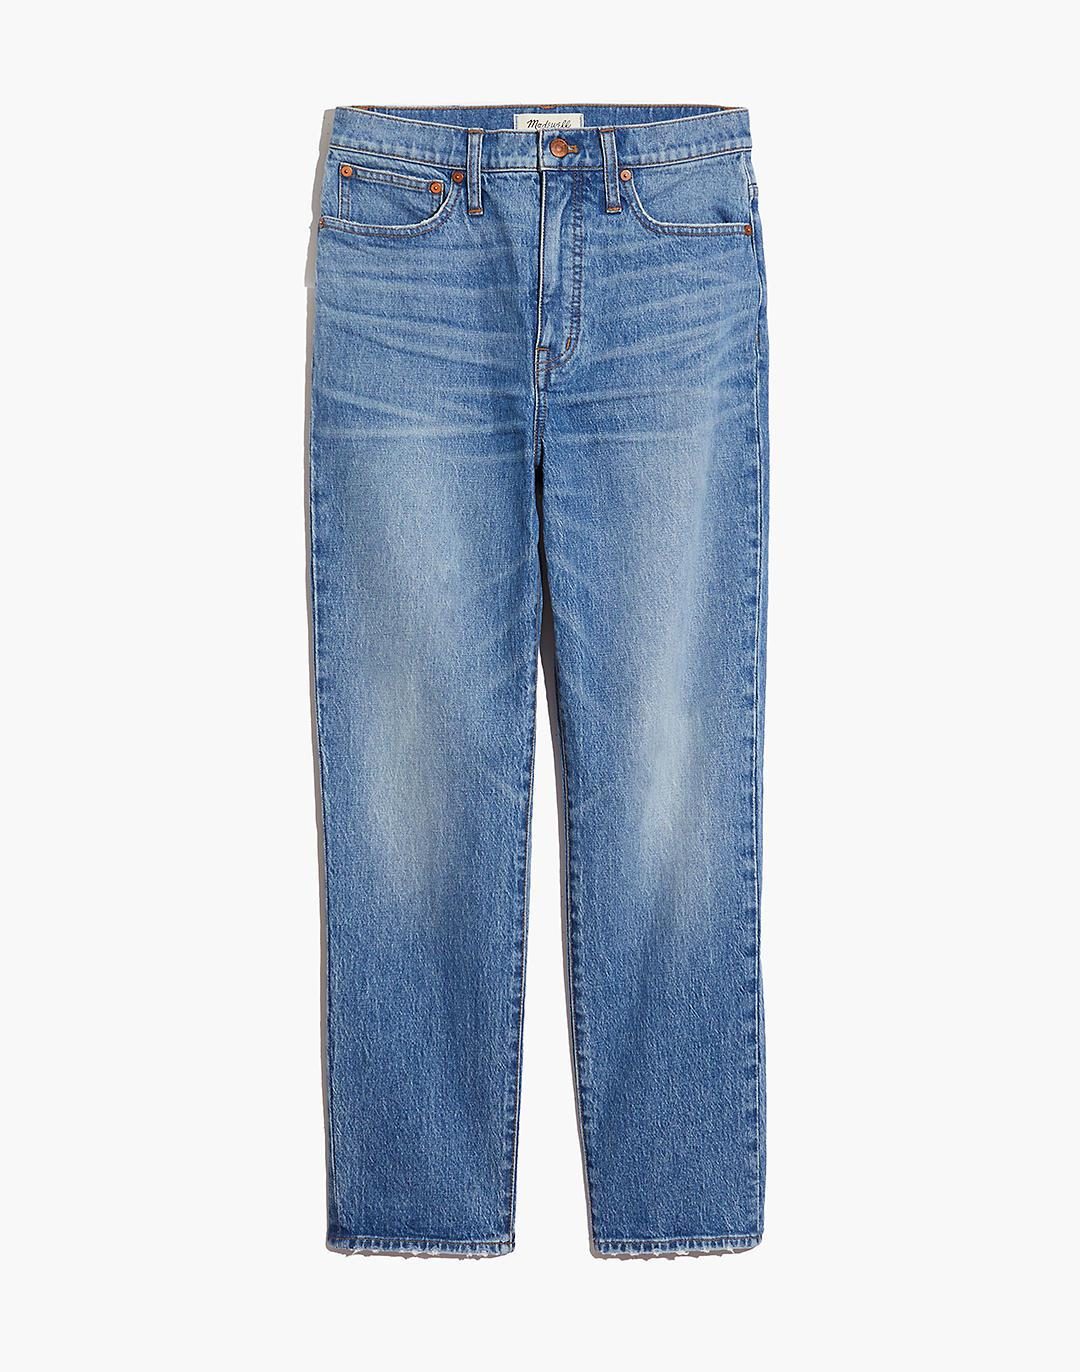 Petite Classic Straight Jeans in Nearwood Wash 4